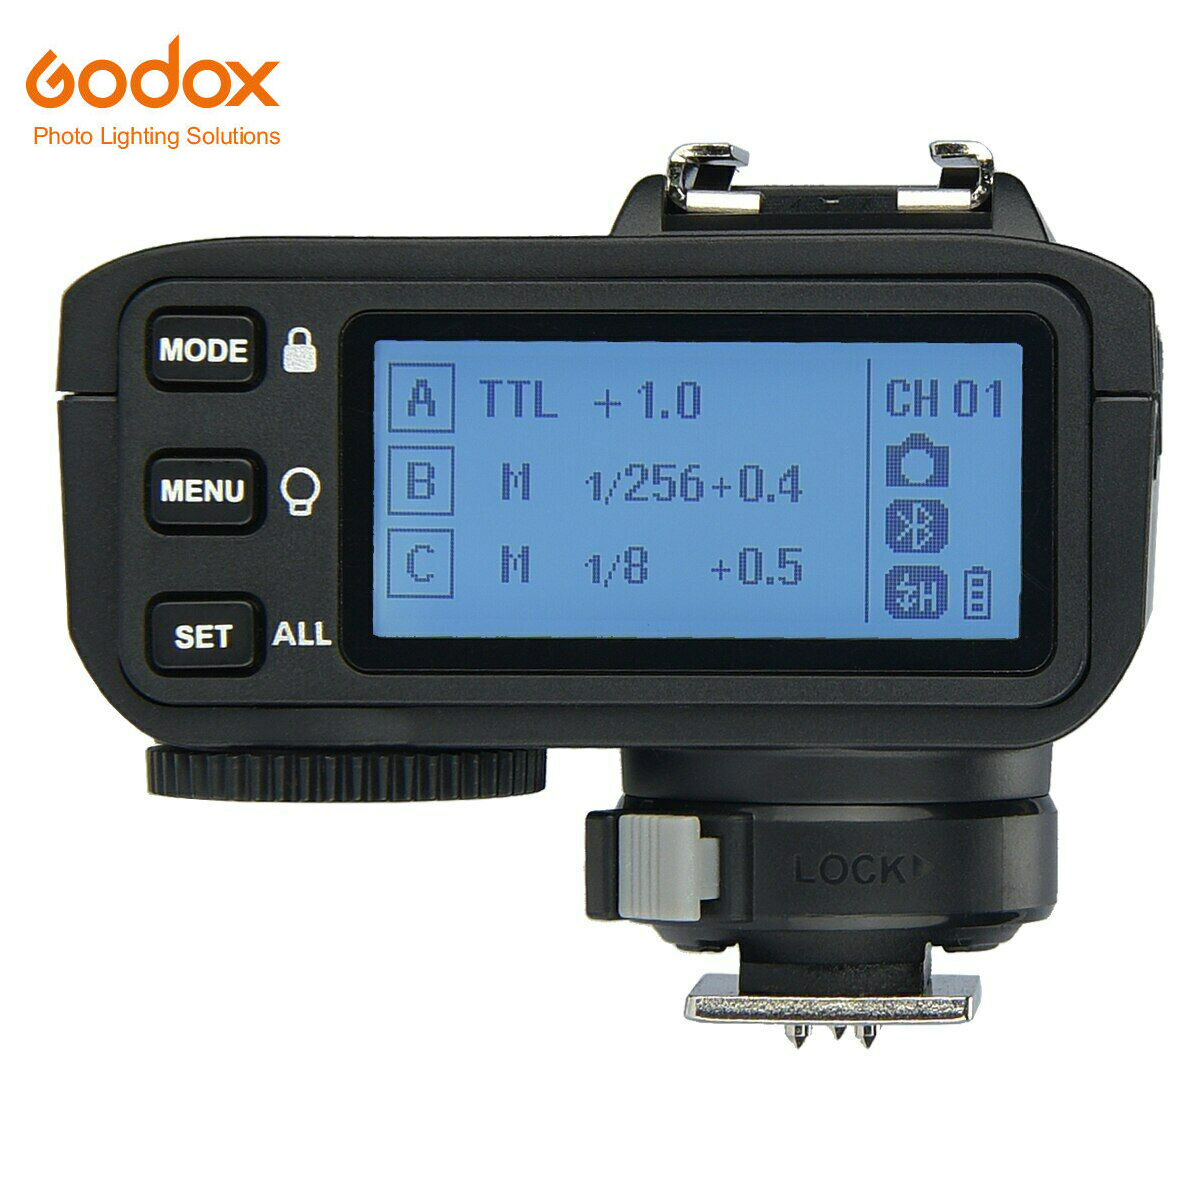 Relocated Control-Wheel Godox X2T-C TTL Wireless Flash Trigger for Canon New AF Assist Light New Hotshoe Locking TCM Function Bluetooth Connection 5 Separate Group Buttons 1//8000s HSS